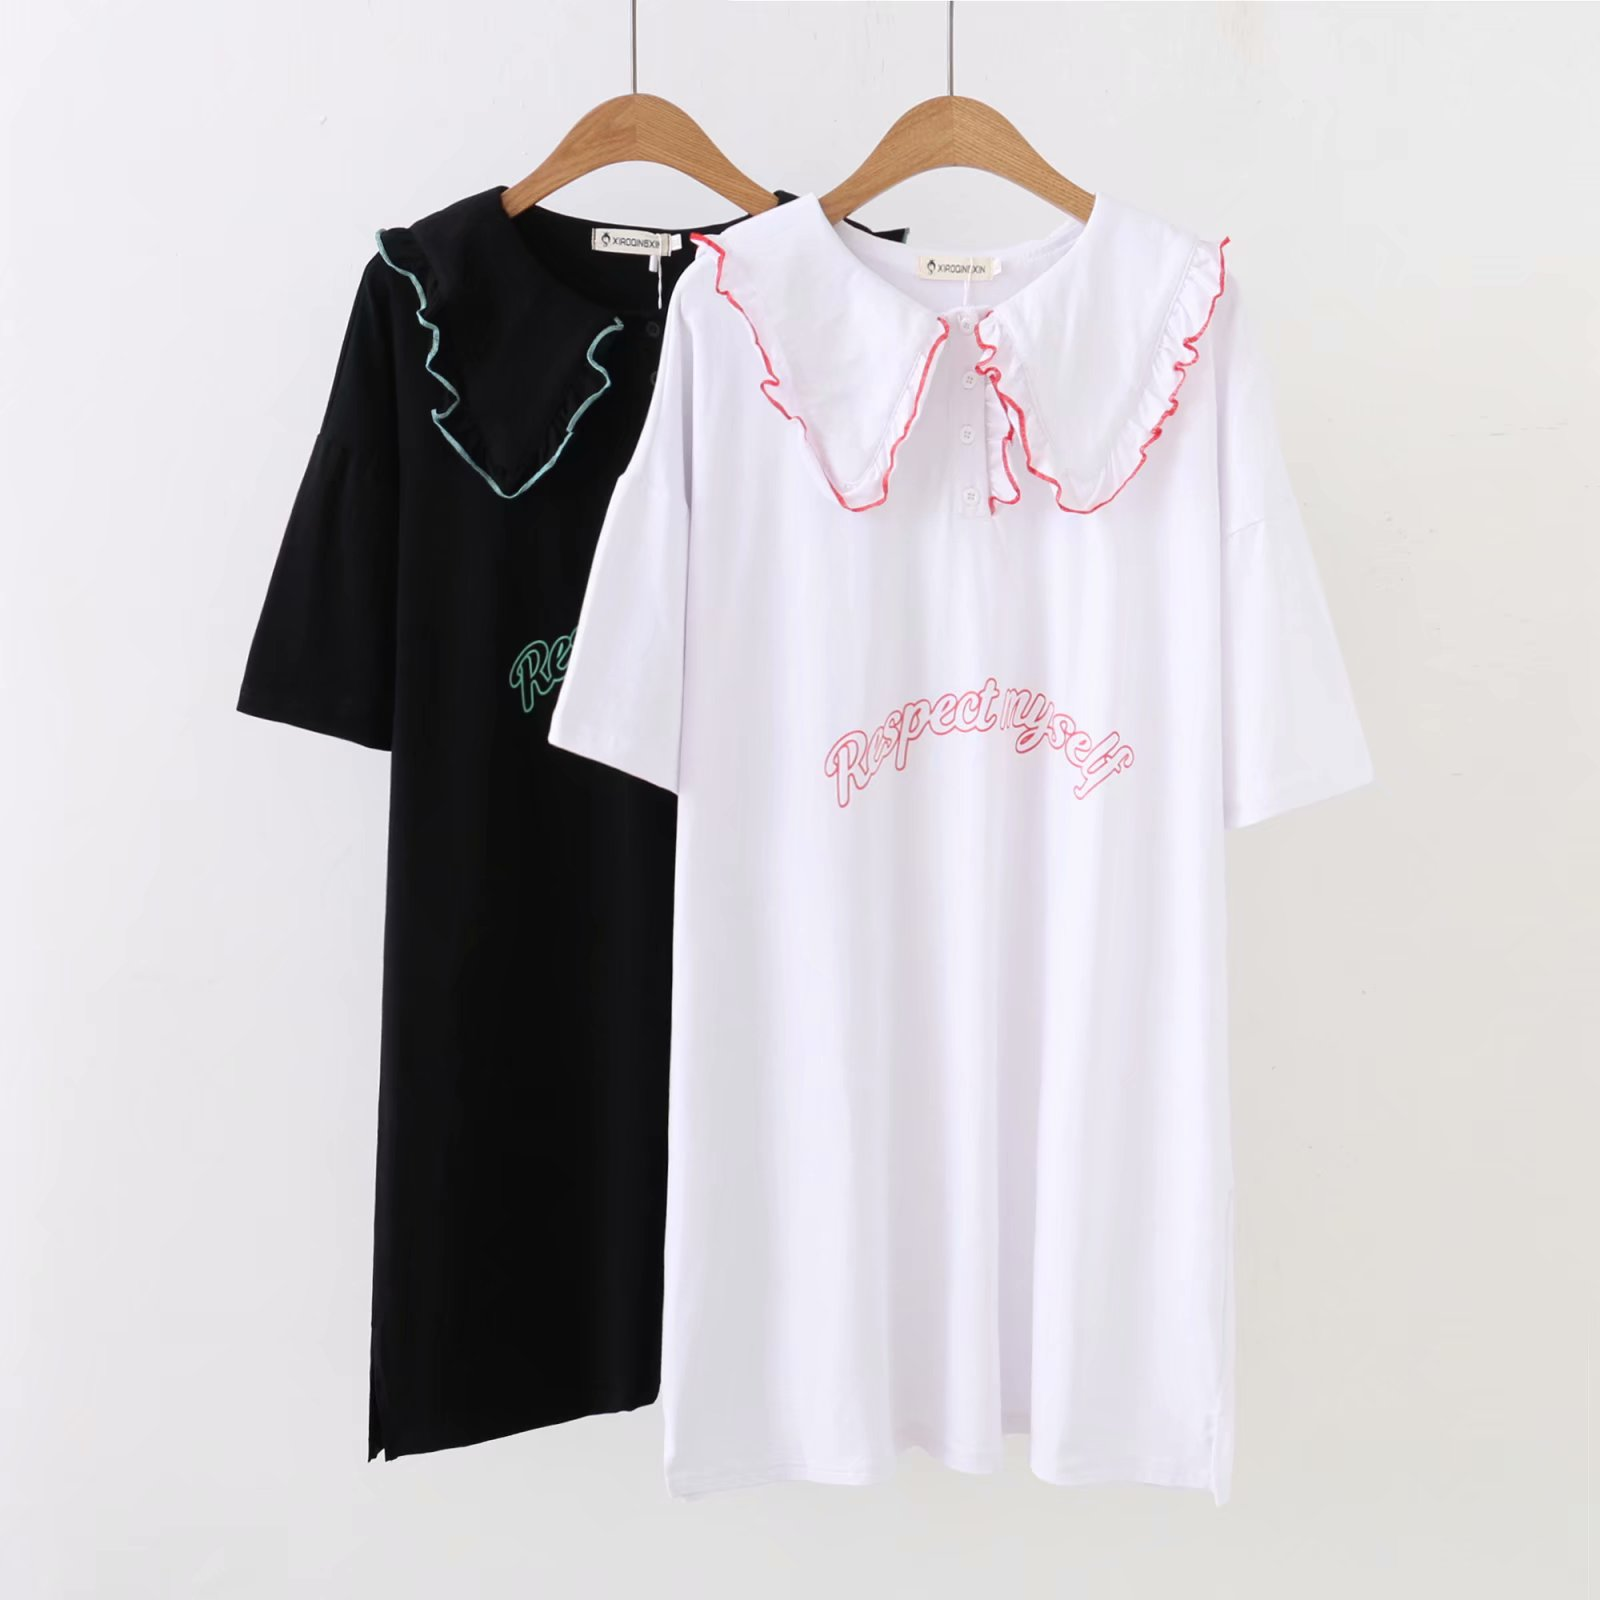 f3127285a9bcc T-Shirts Cheap T-Shirts Oversized Plus Size O Neck Women T.We offer the  best wholesale price